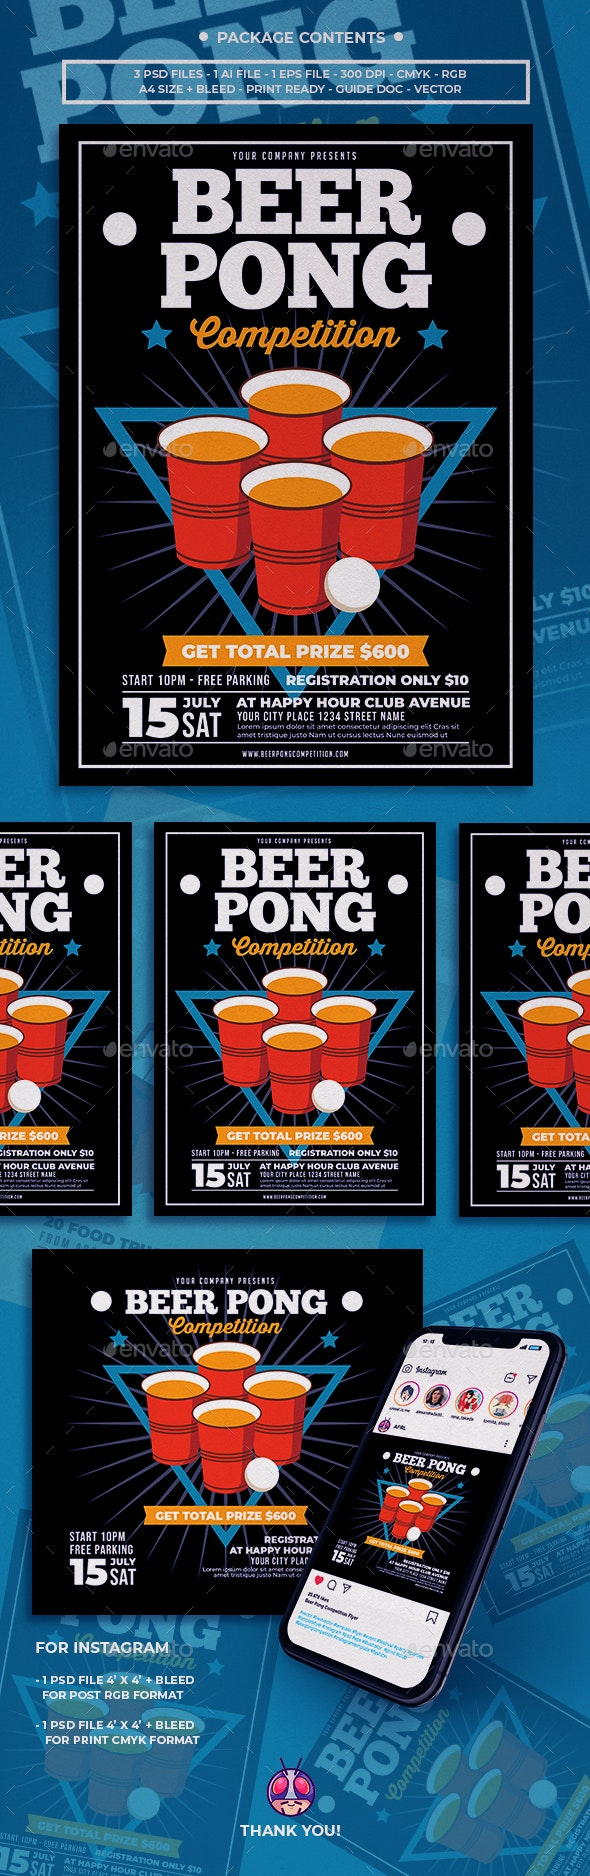 Beer Pong Competition Flyer - Clubs & Parties Events